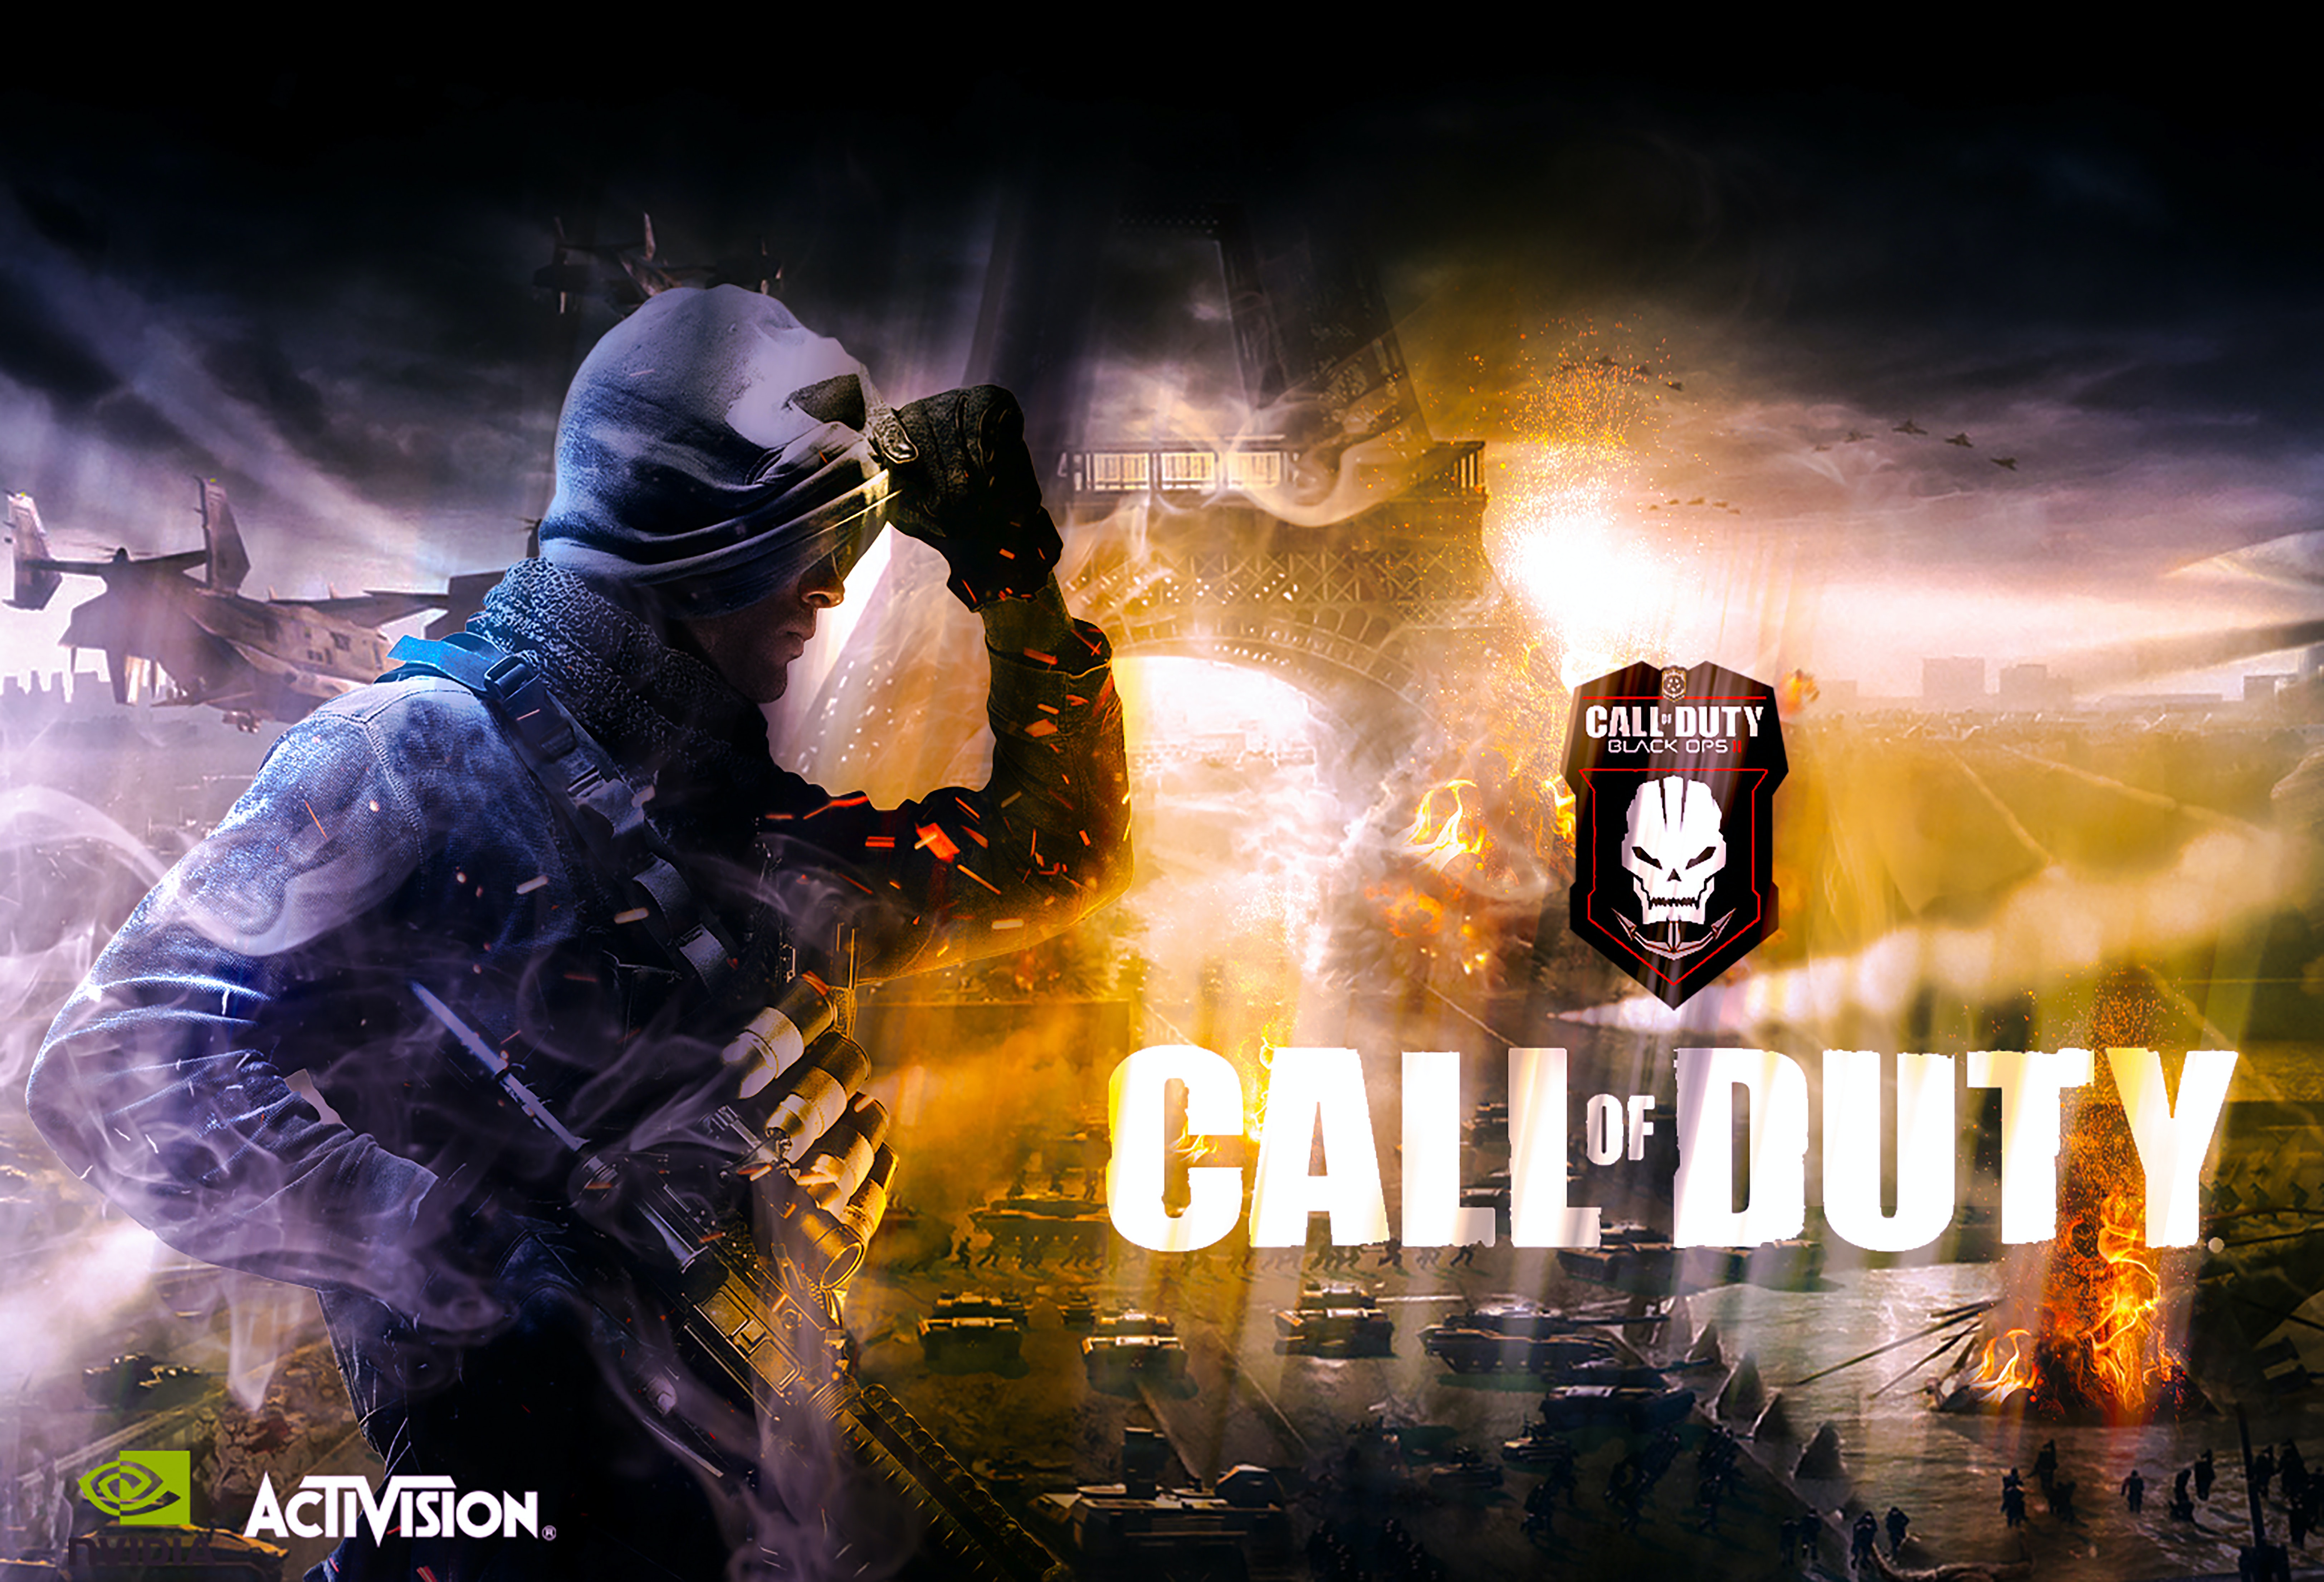 Free stock photo of Call Of Duty